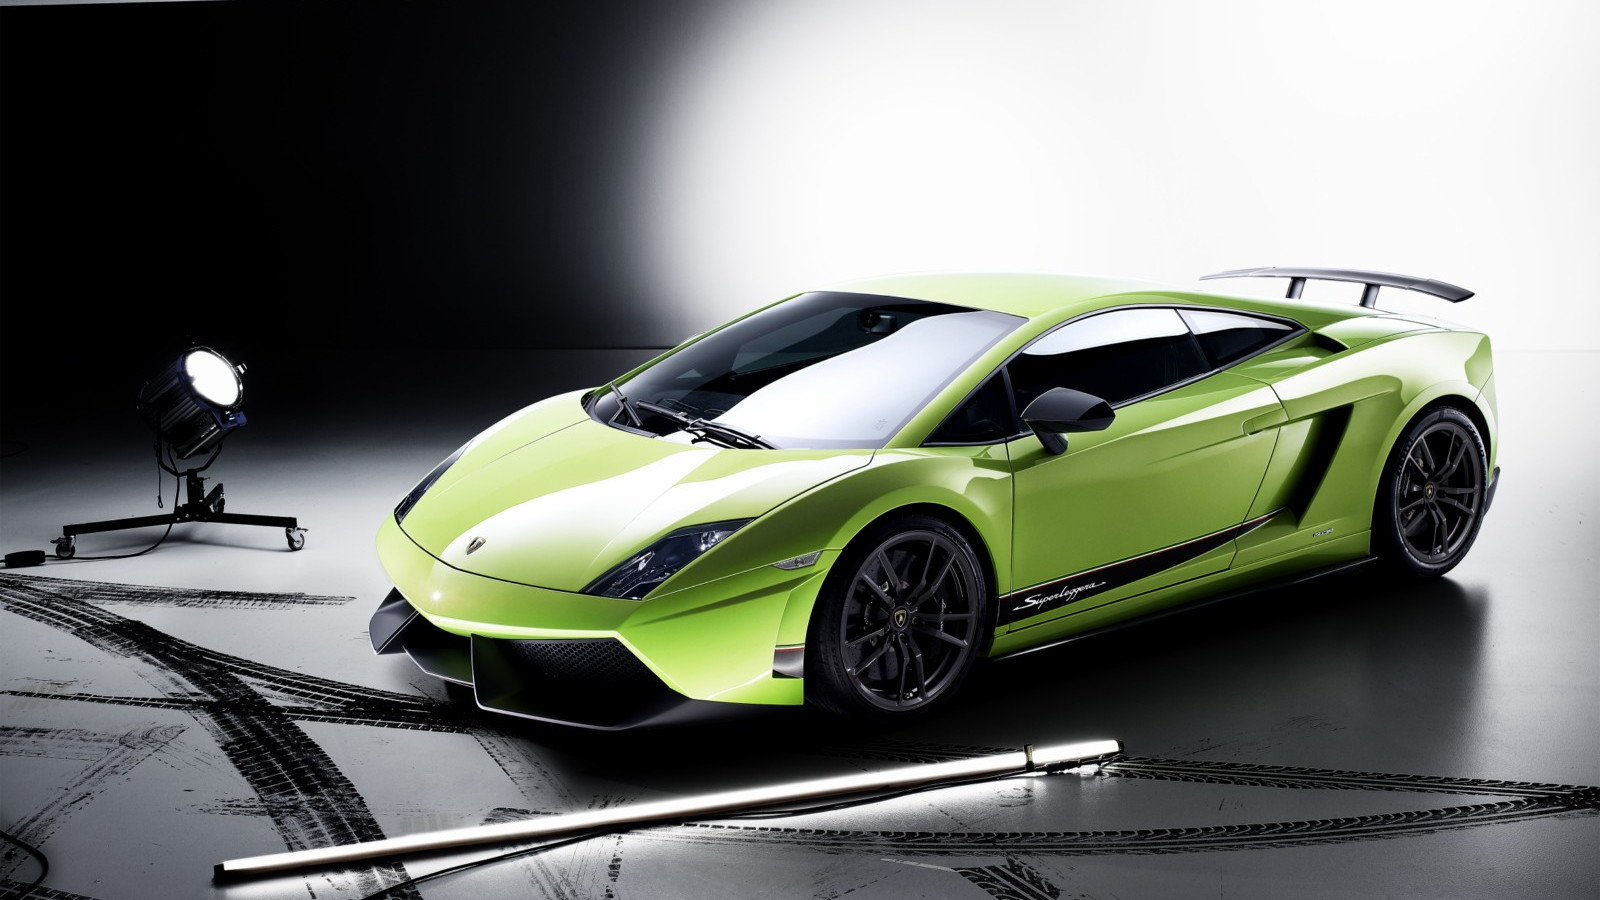 Lamborghini Gallardo LP 570-4 Superleggera